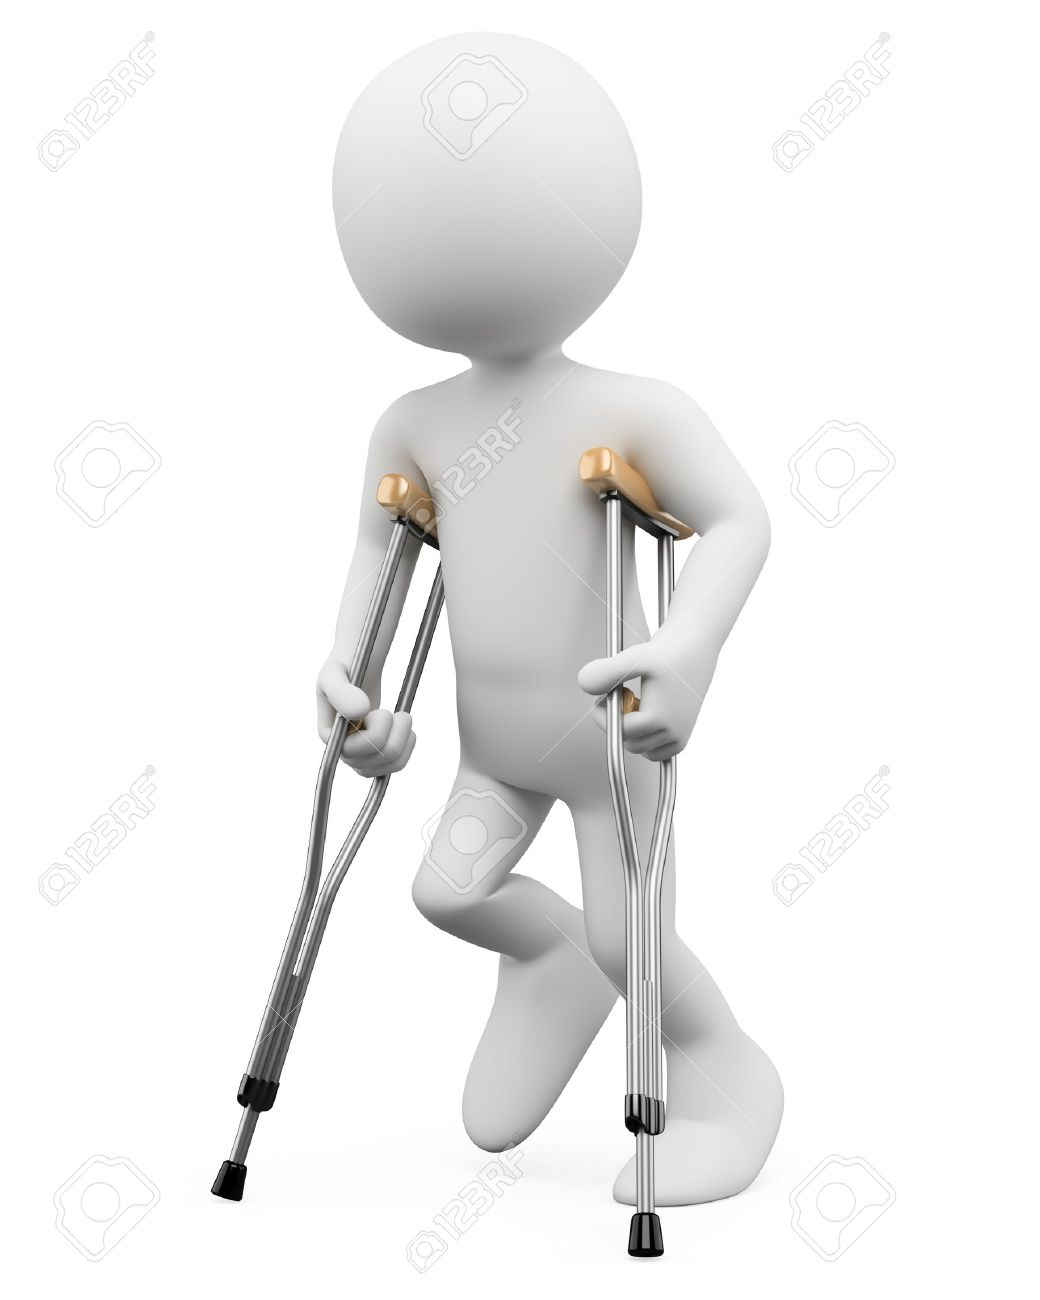 3d white person on crutches. 3d image. Isolated white background. Stock Photo - 14403226